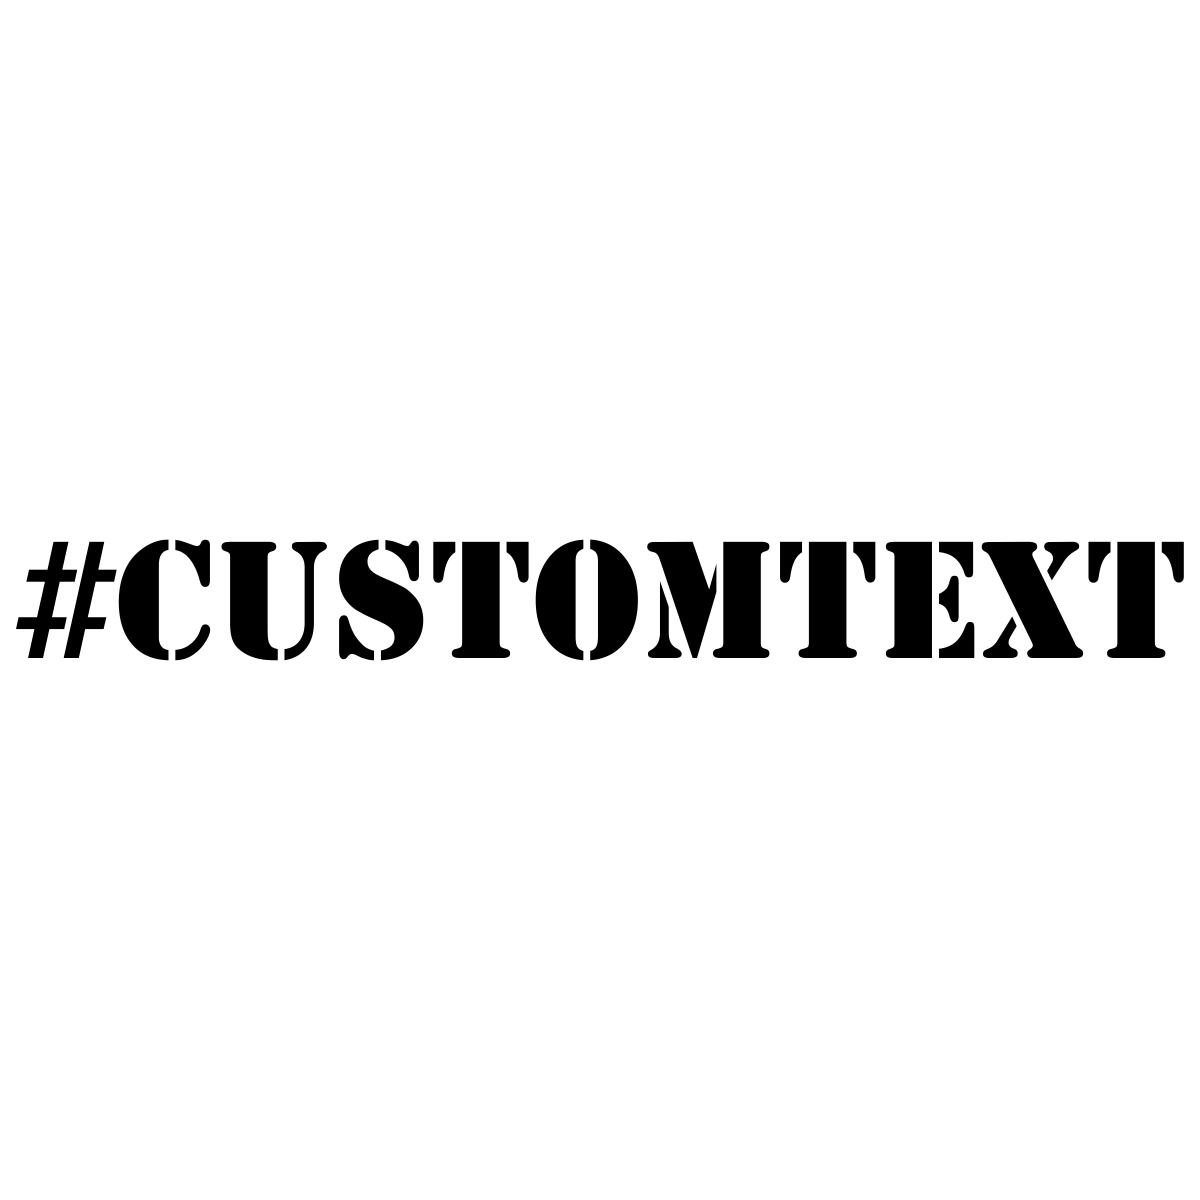 Custom Text Stencil Hashtag Rubber Stamp